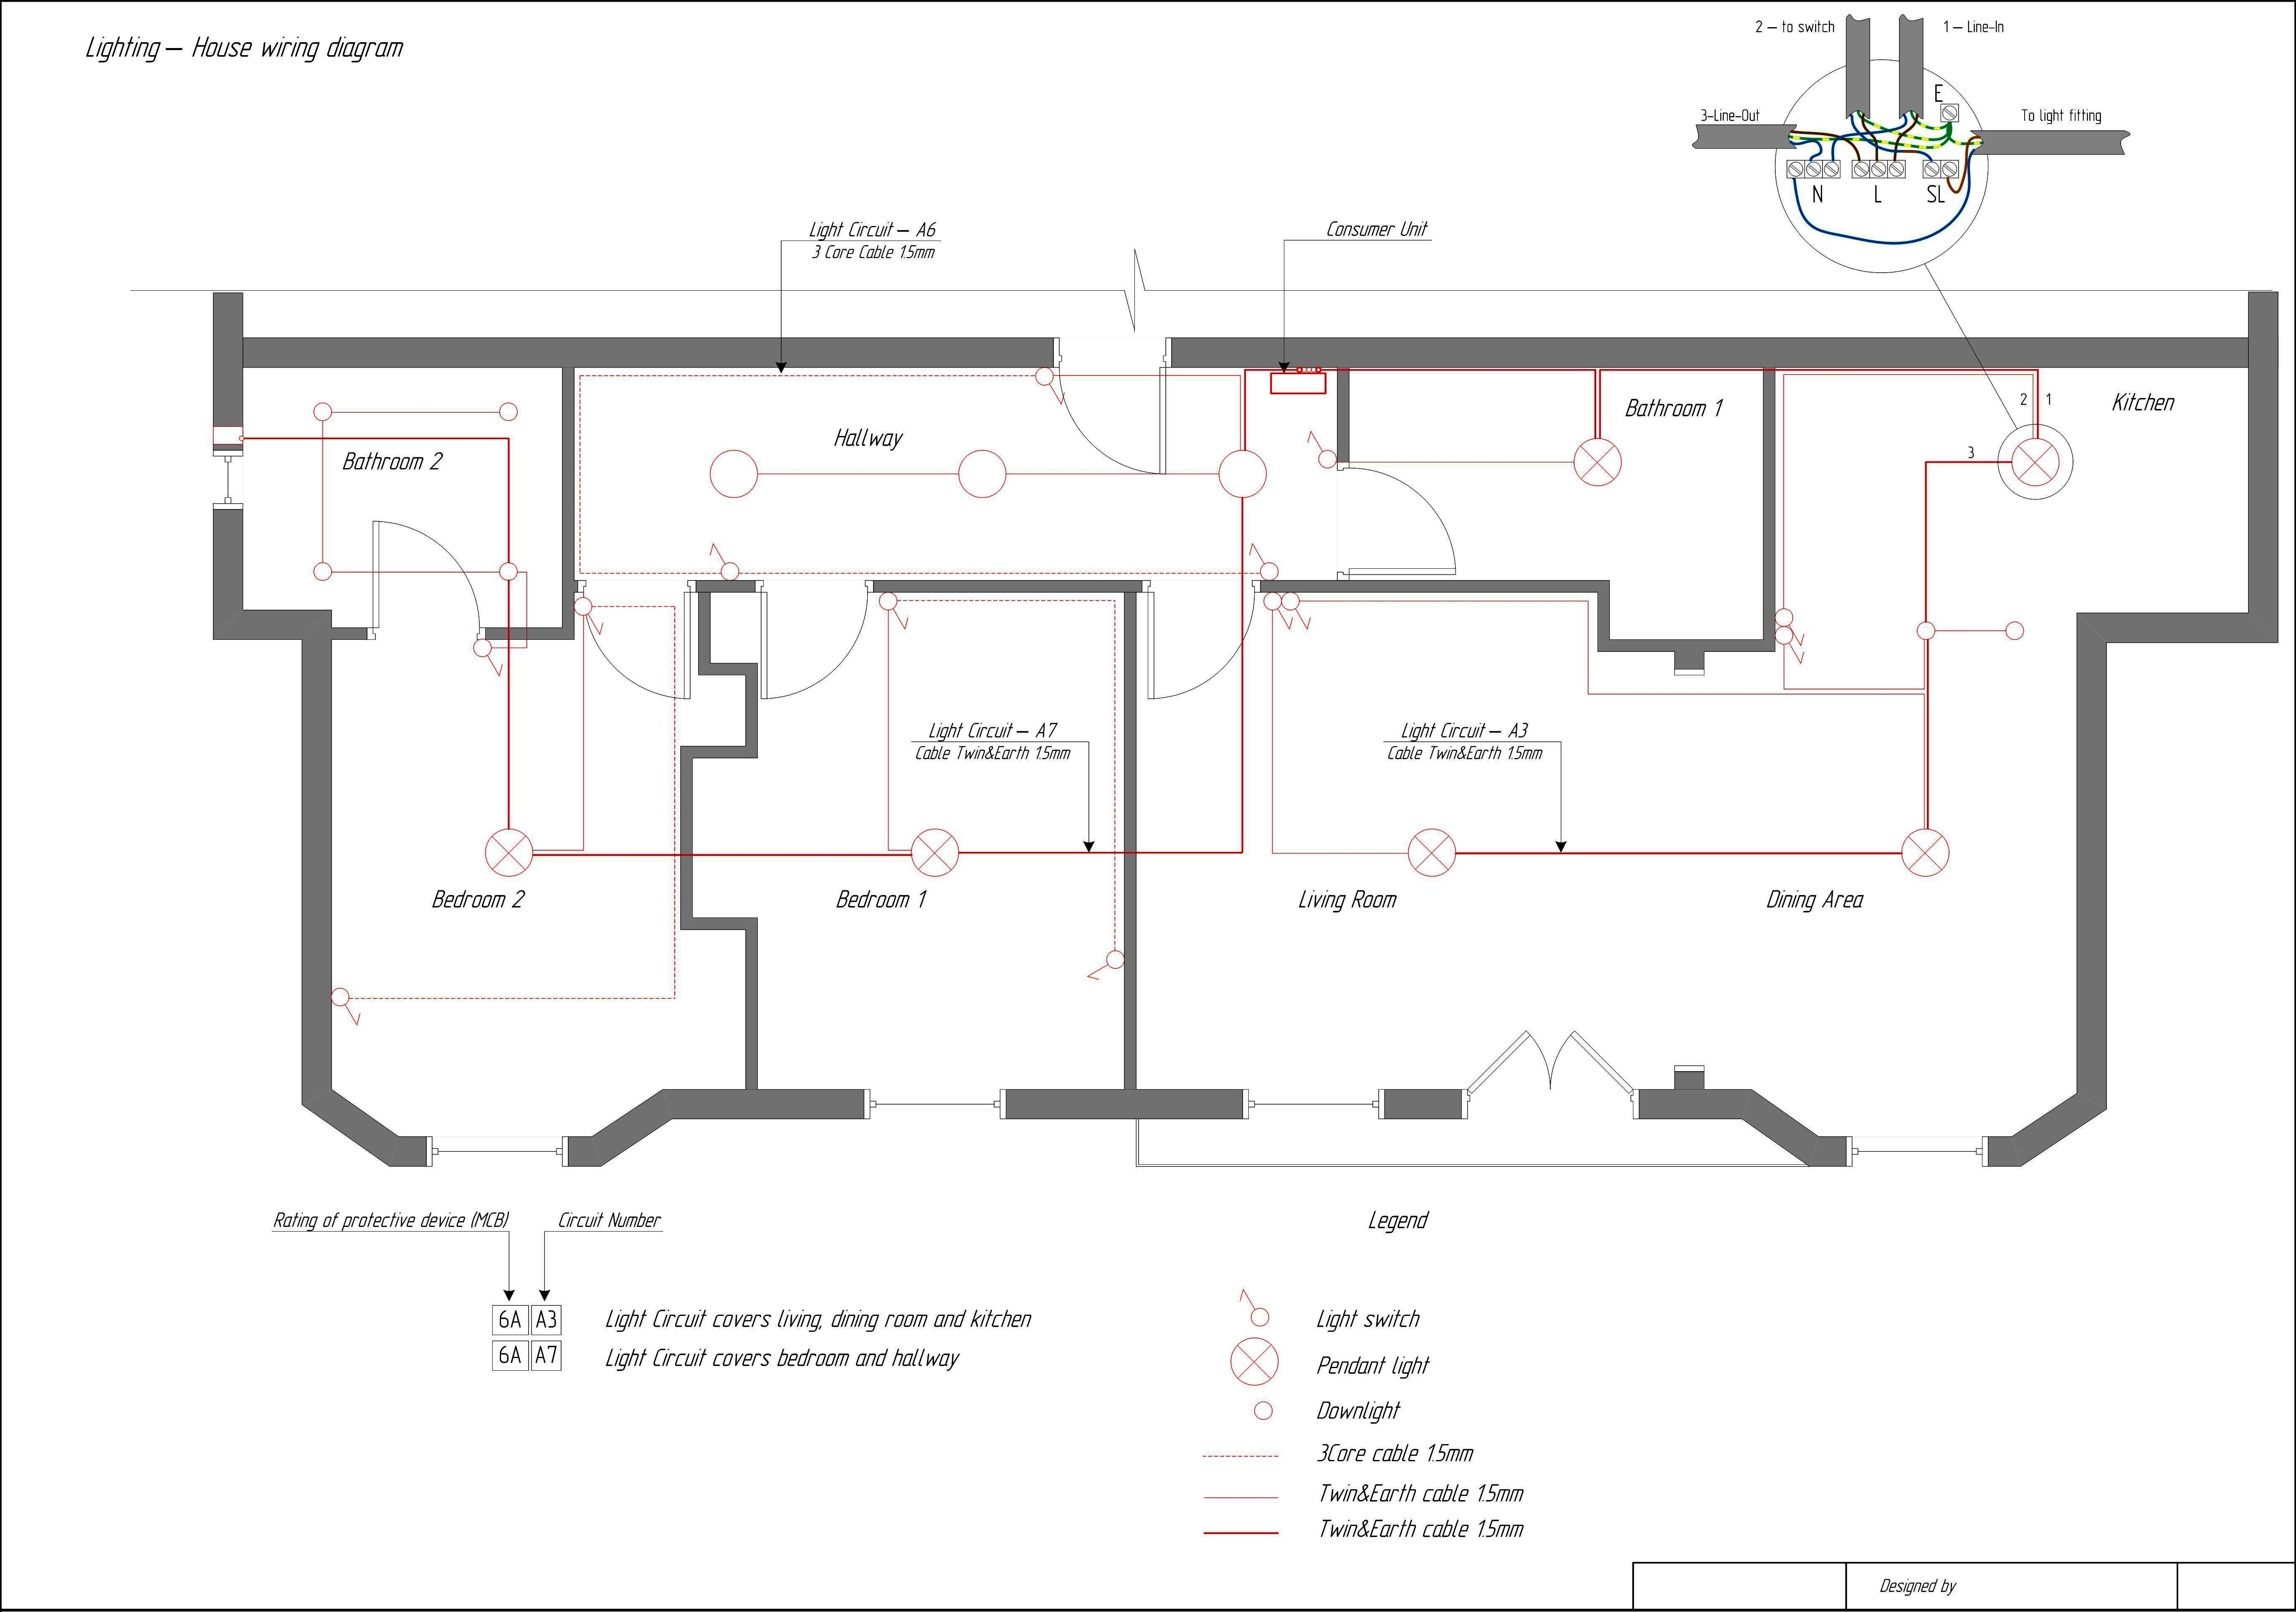 House Wiring Schematic - Wiring Diagram Data Oreo - Home Wiring Diagram